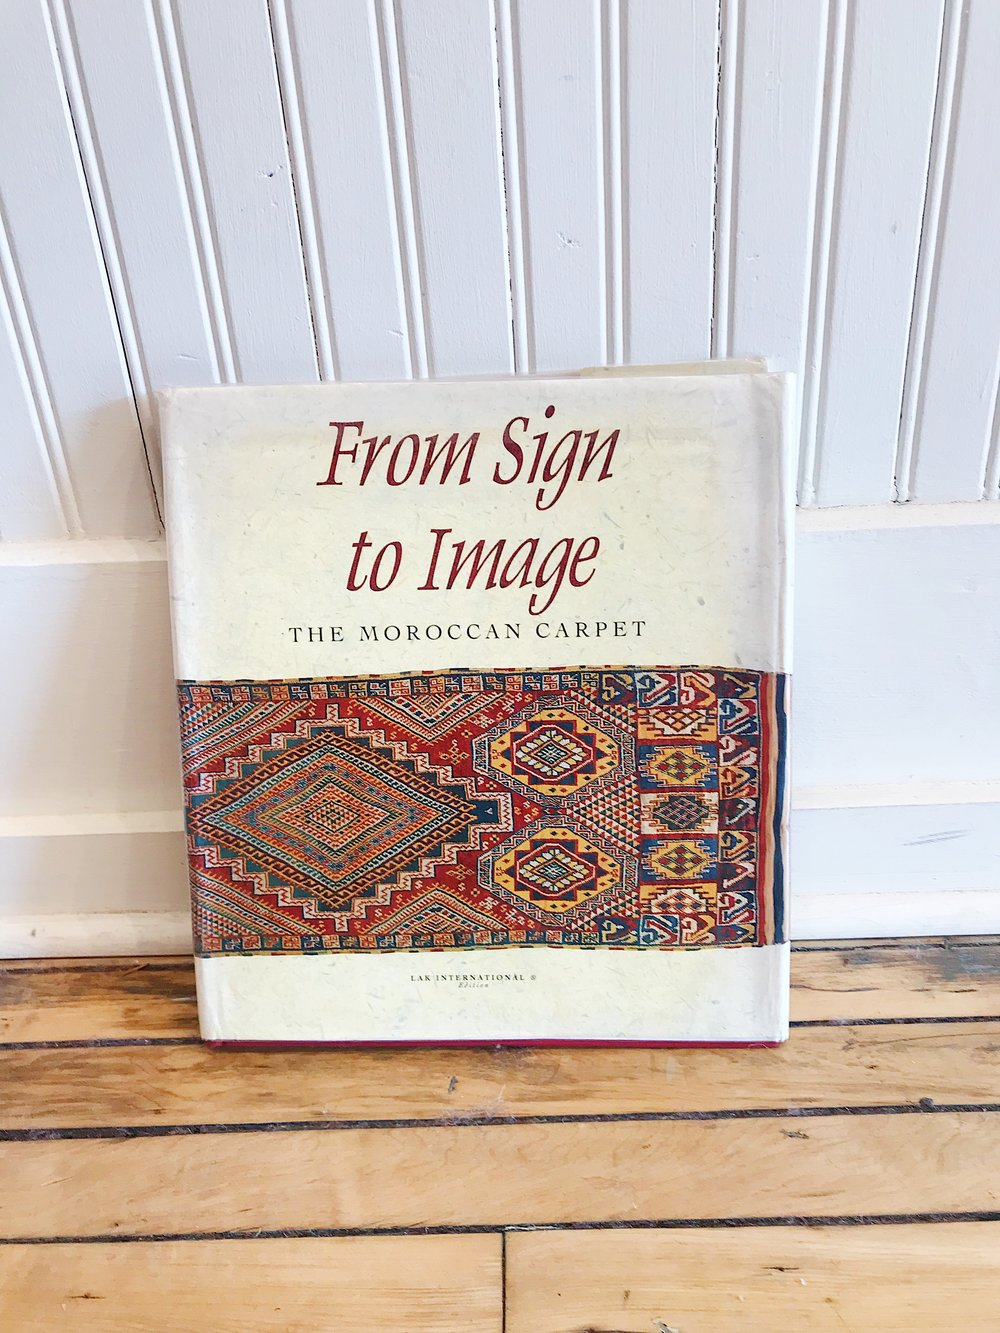 """From Sign to Image: The Moroccan Carpet,"" by Abdelkebir Khatibi and Ali Amahan, 1994"